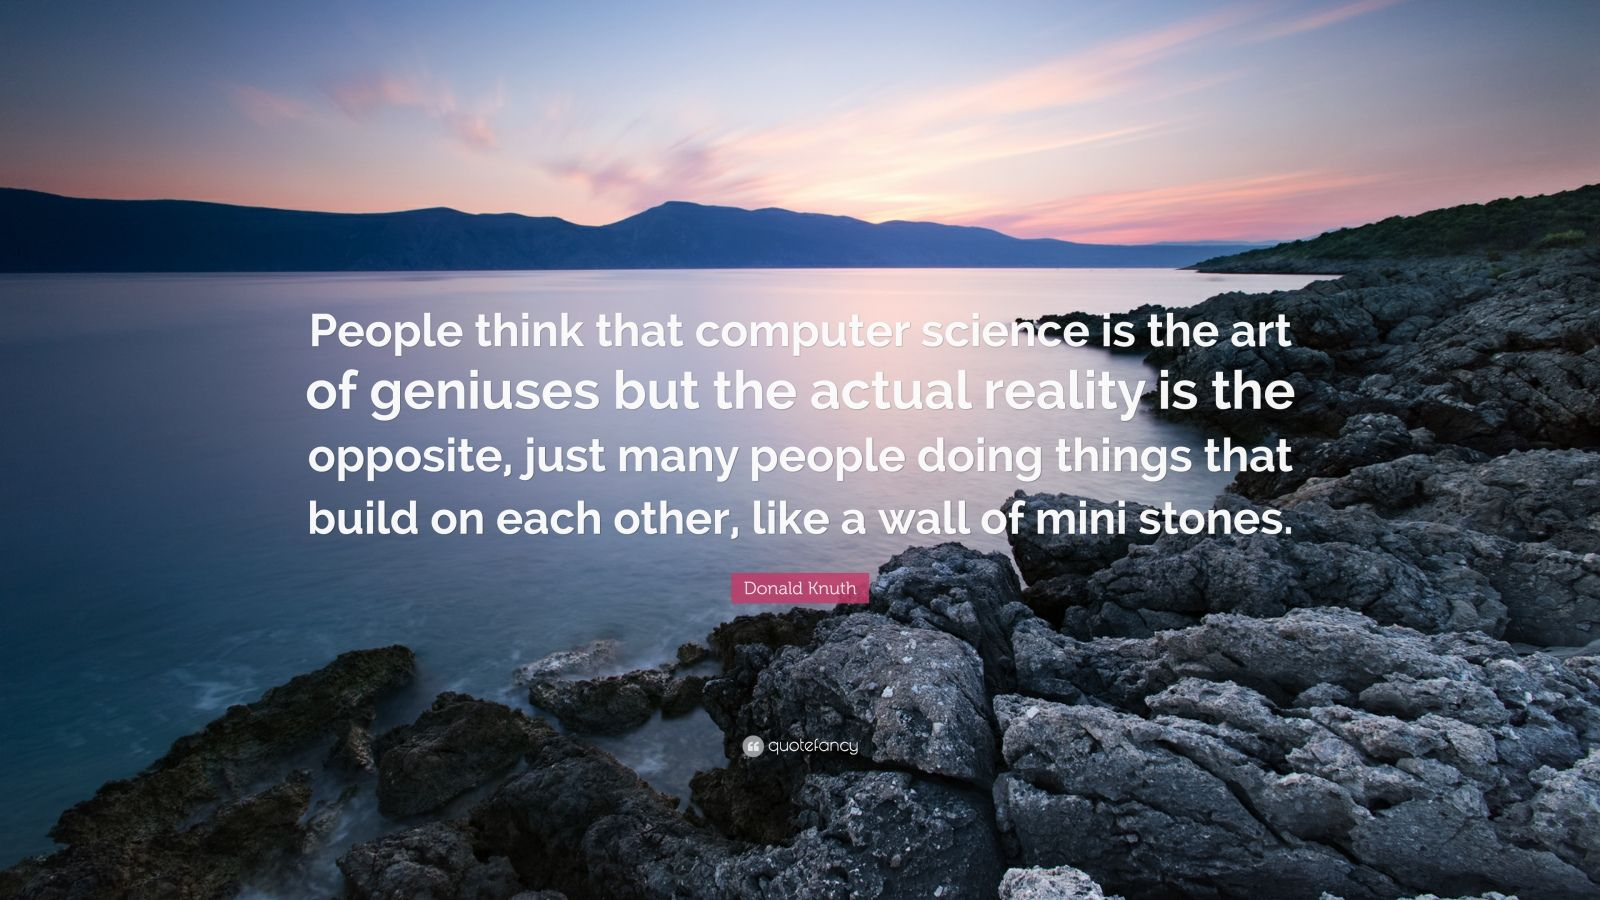 """Donald Knuth Quote: """"People think that computer science is the art of geniuses but the actual reality is the opposite, just many people doing things that build on each other, like a wall of mini stones."""""""